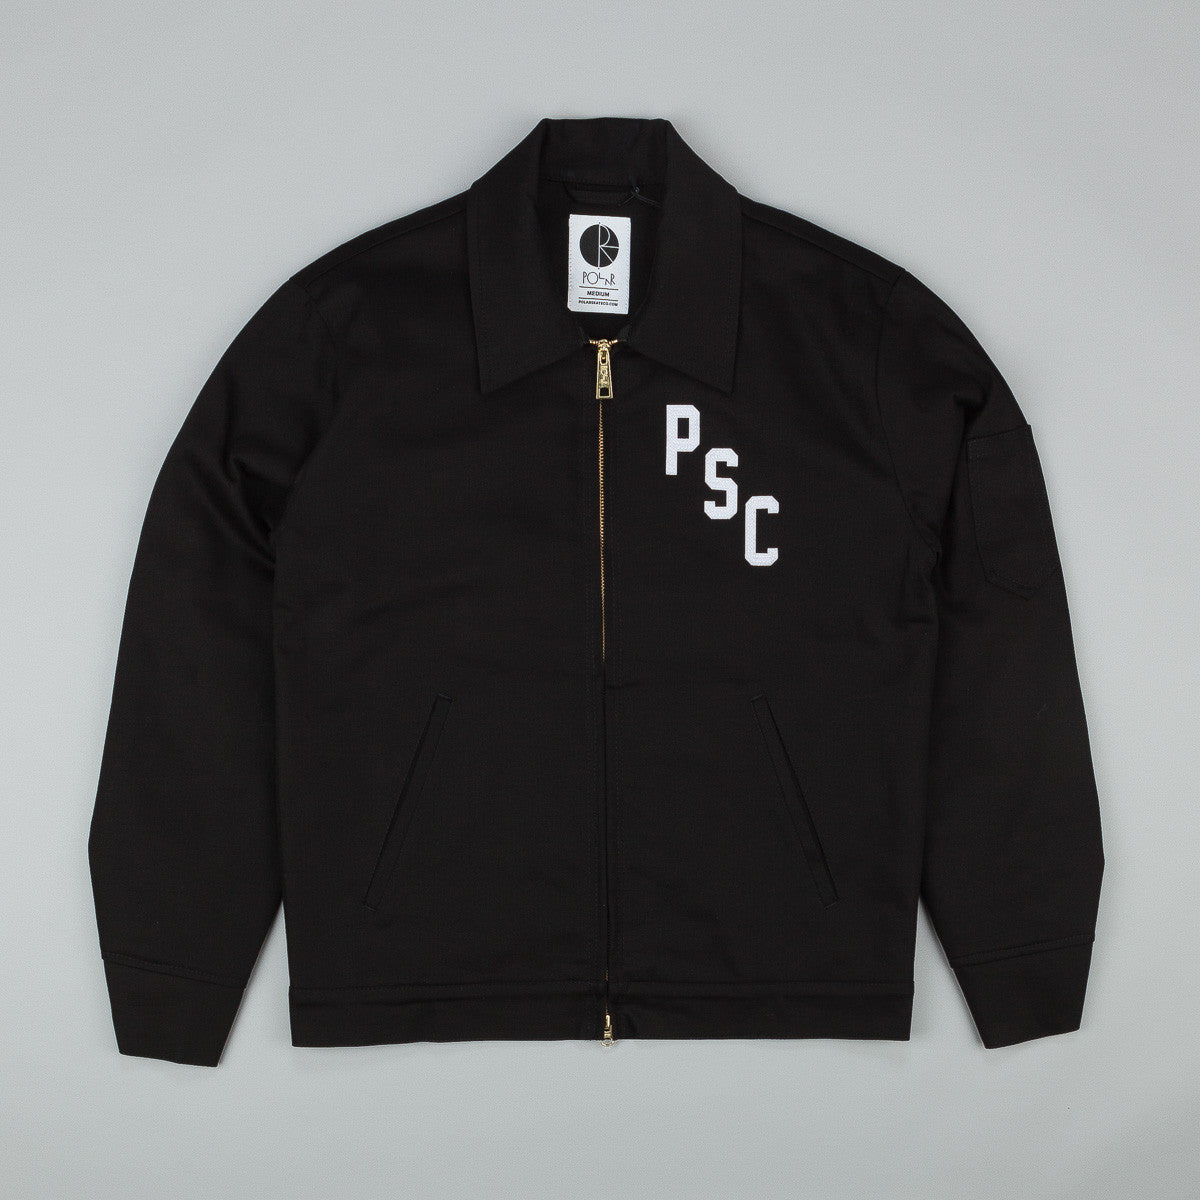 Polar PSC Ground Crew Jacket